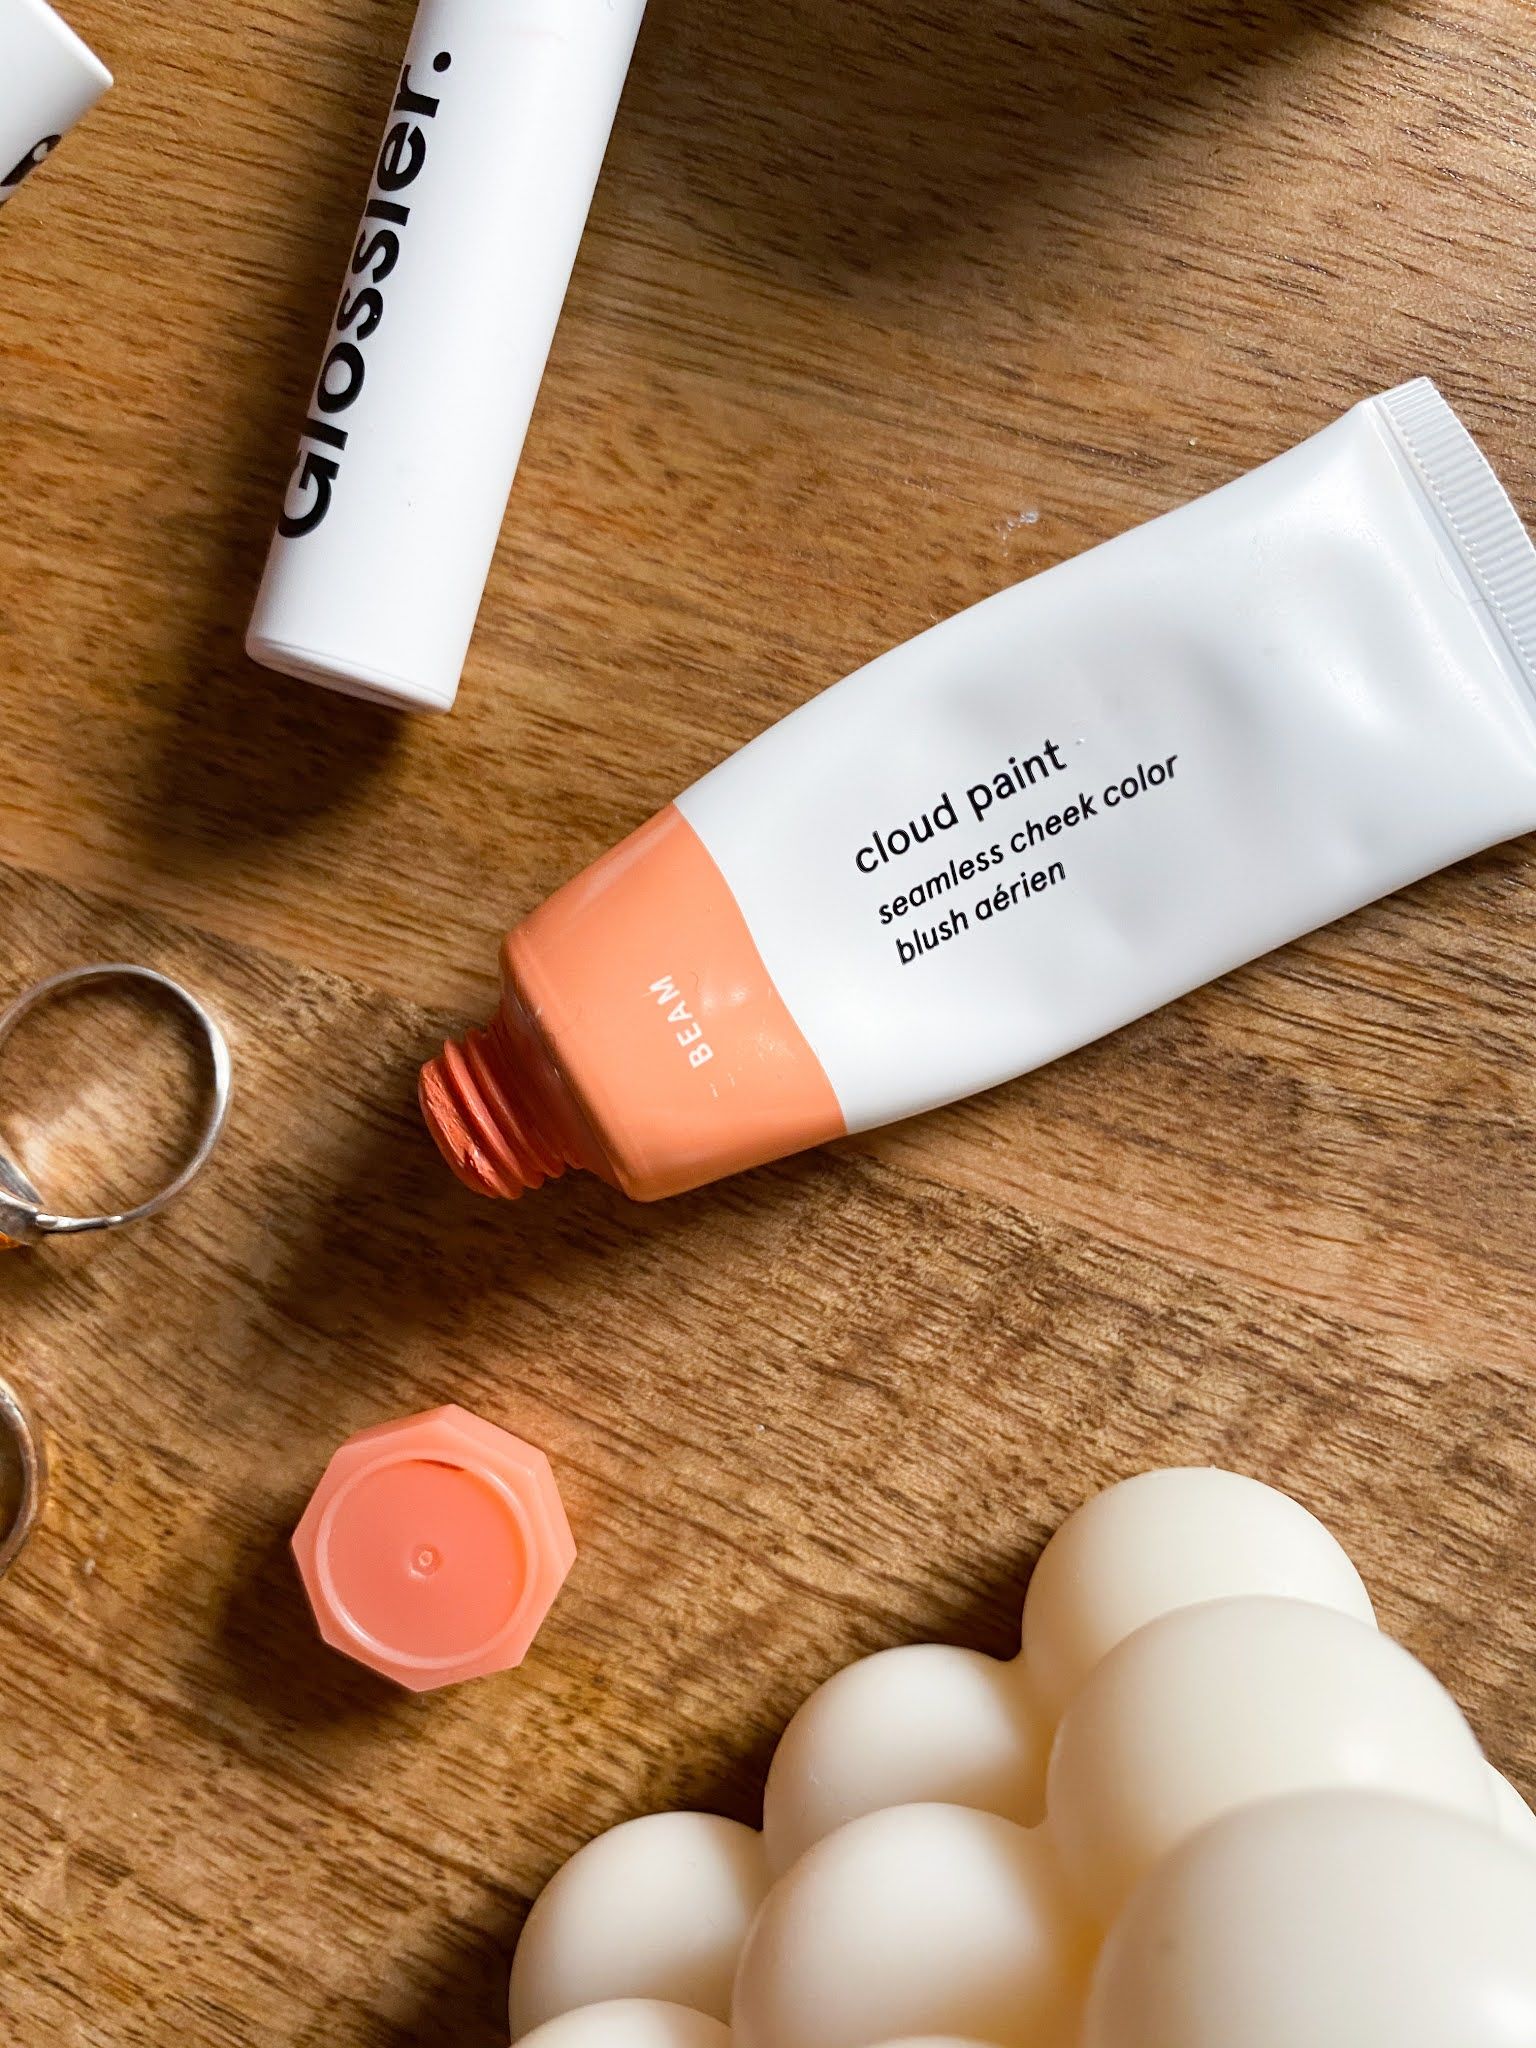 glossier cloud paint liquid blush